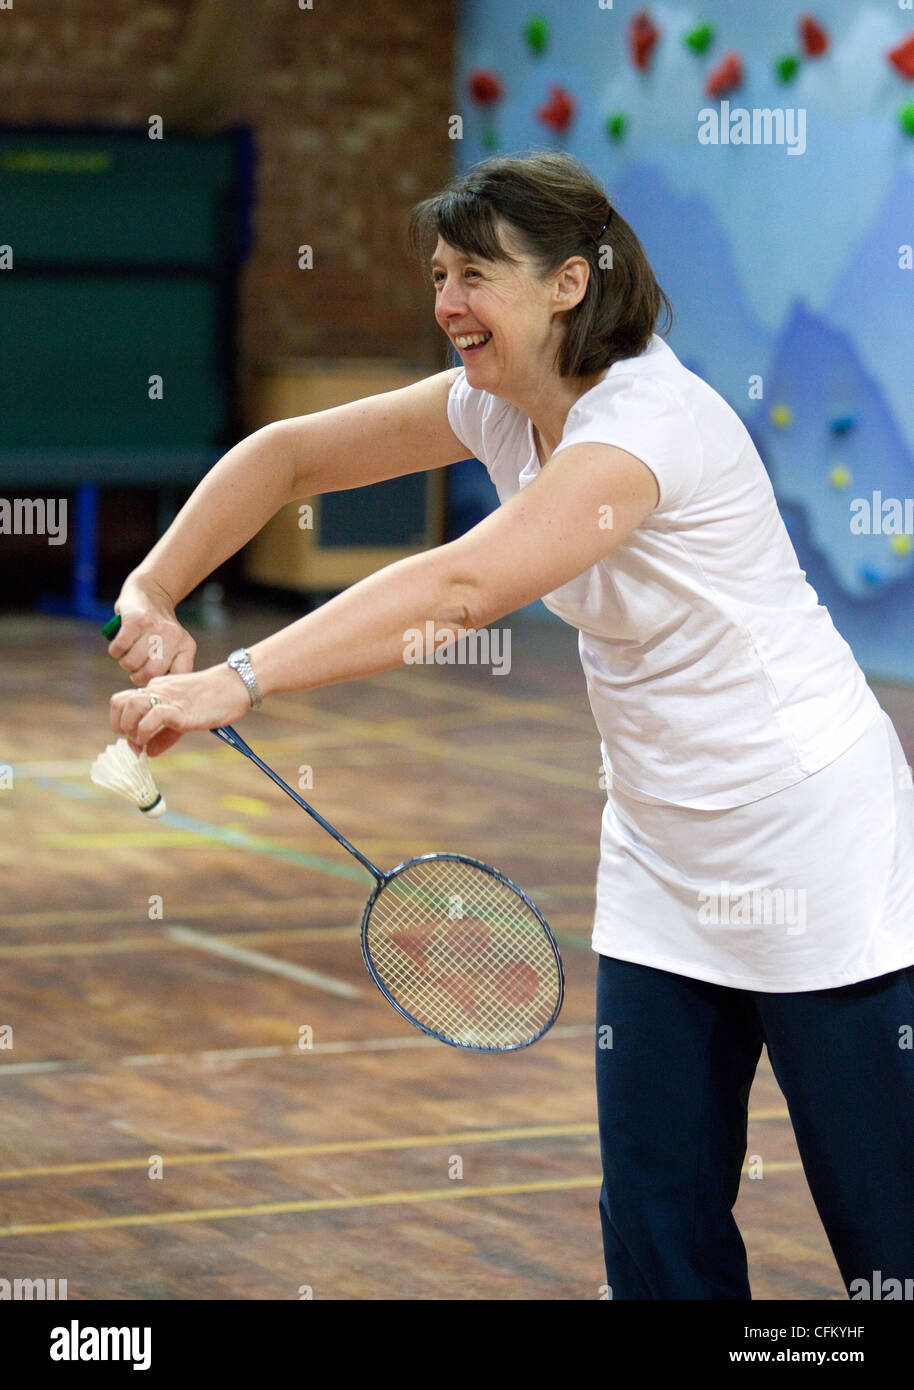 A middle aged lady badminton player serving, Newmarket Suffolk UK - Stock Image